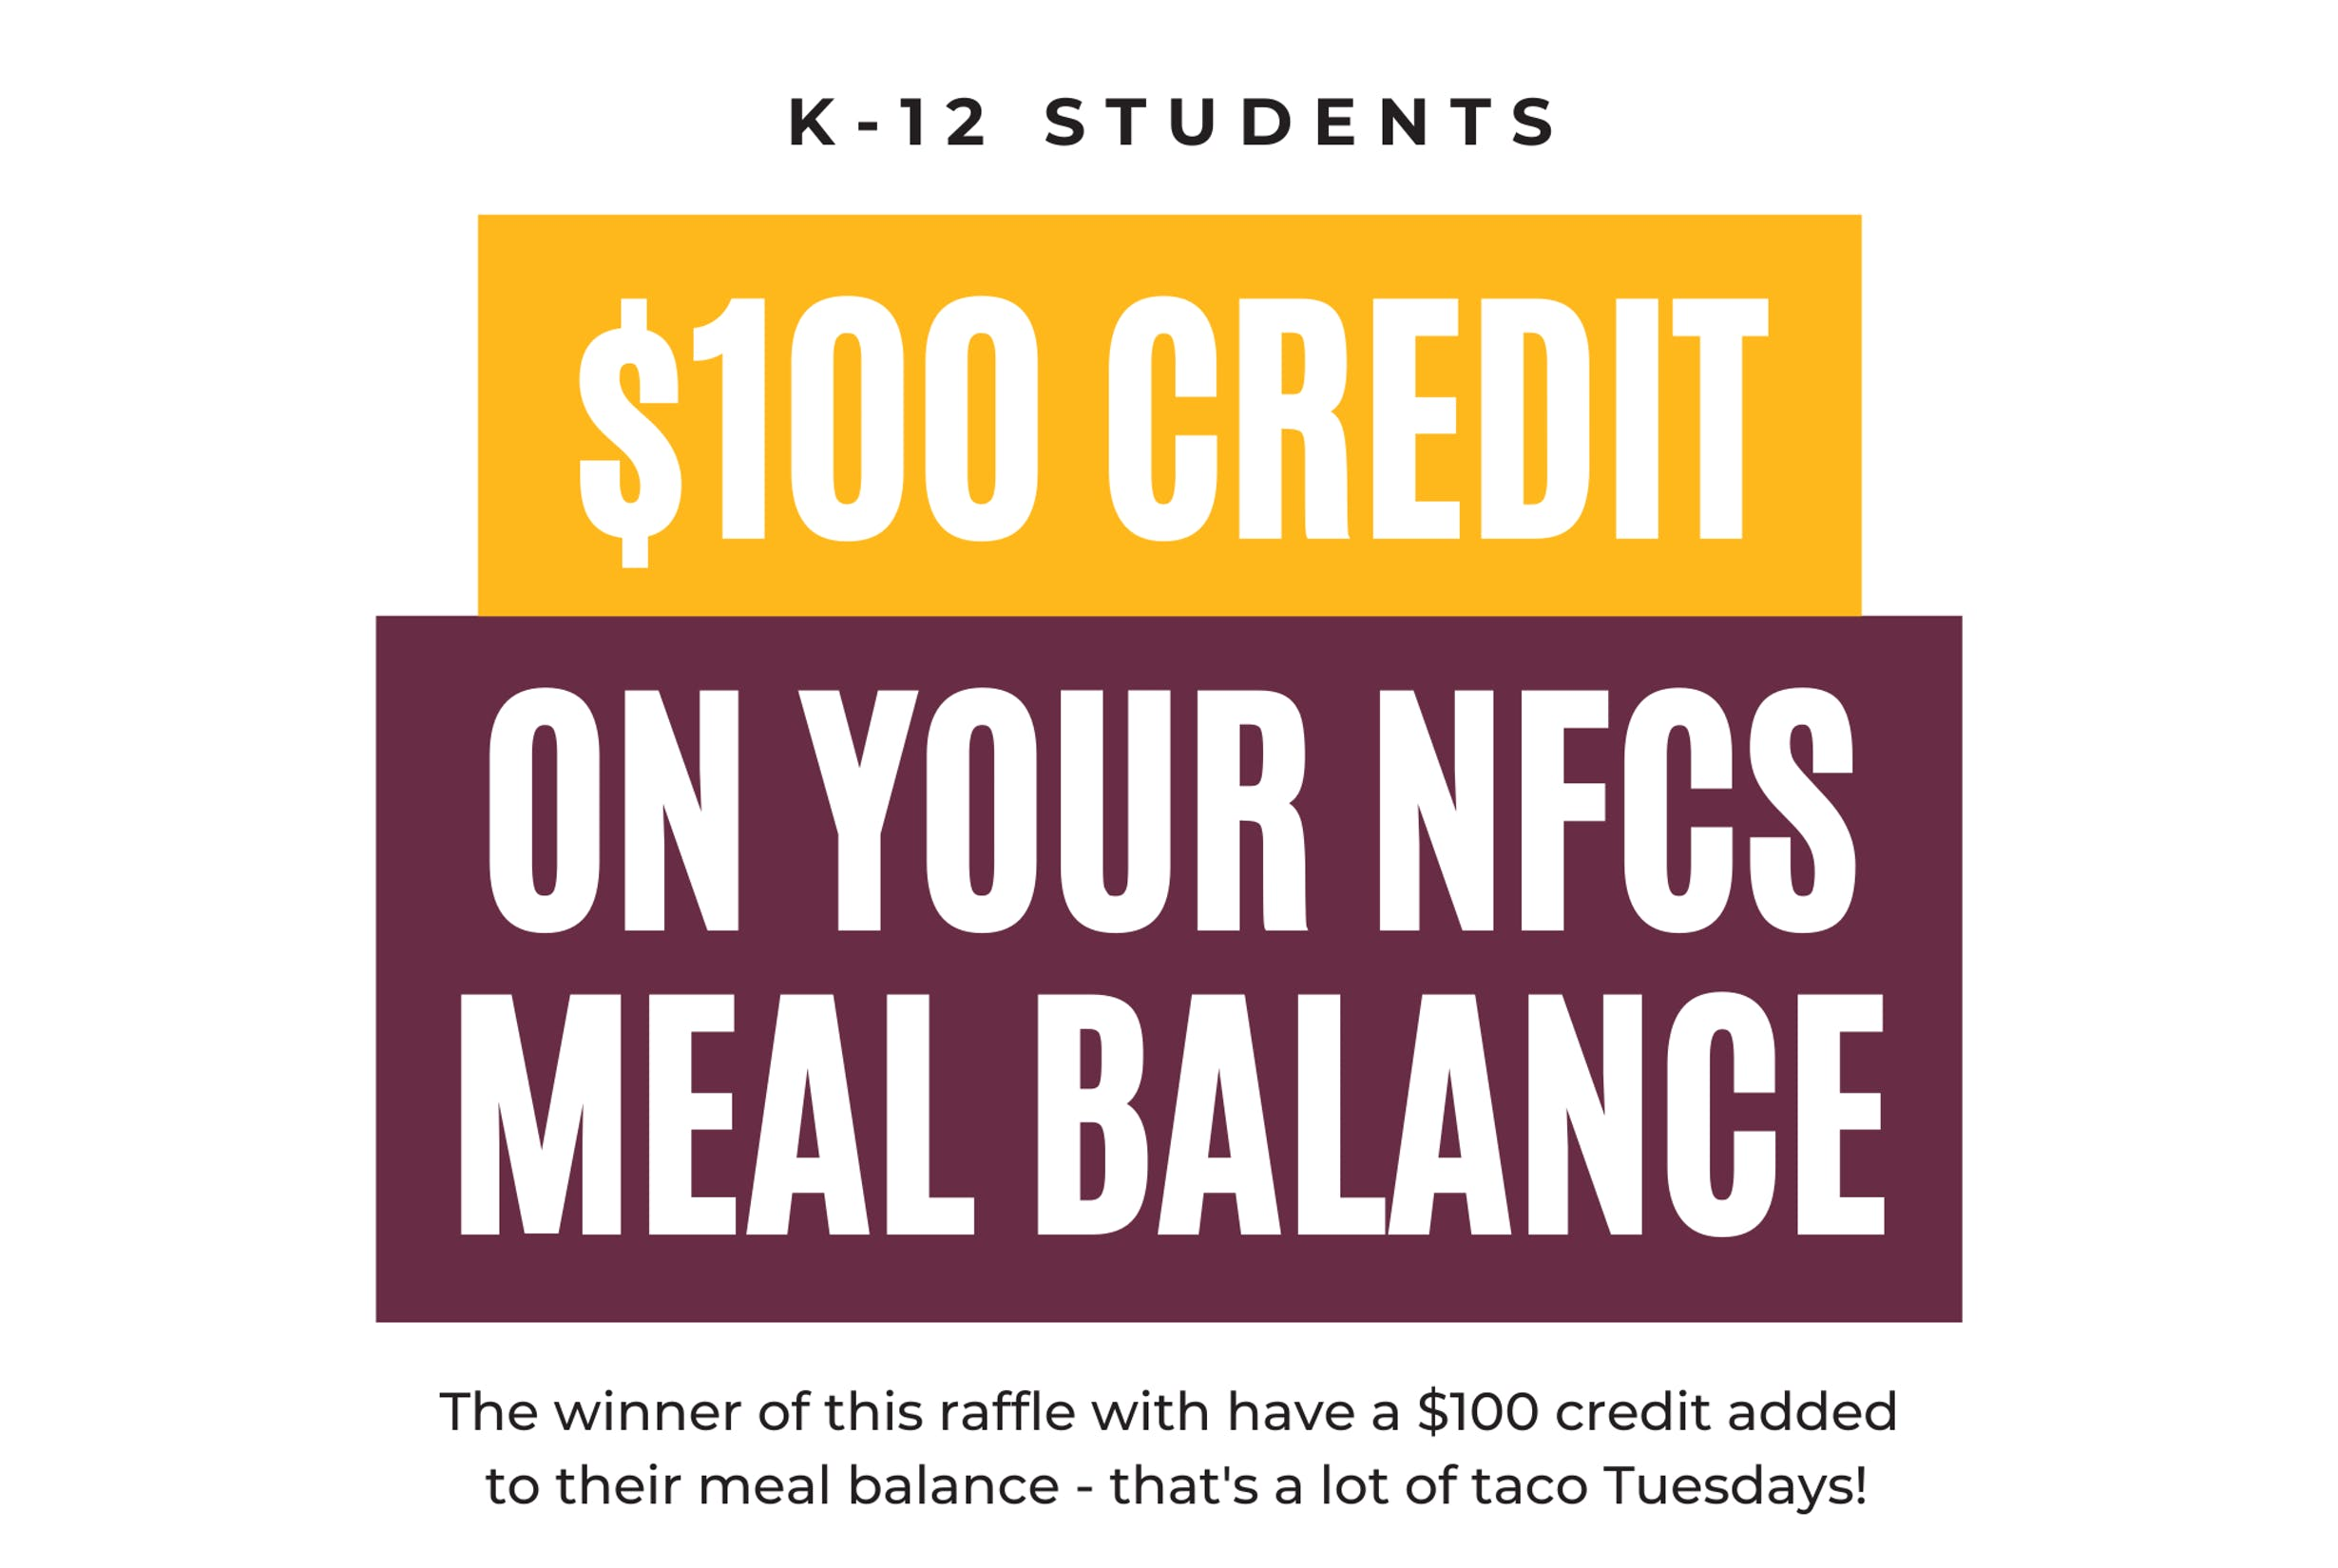 $100 Credit on your New Foundations Meal Balance